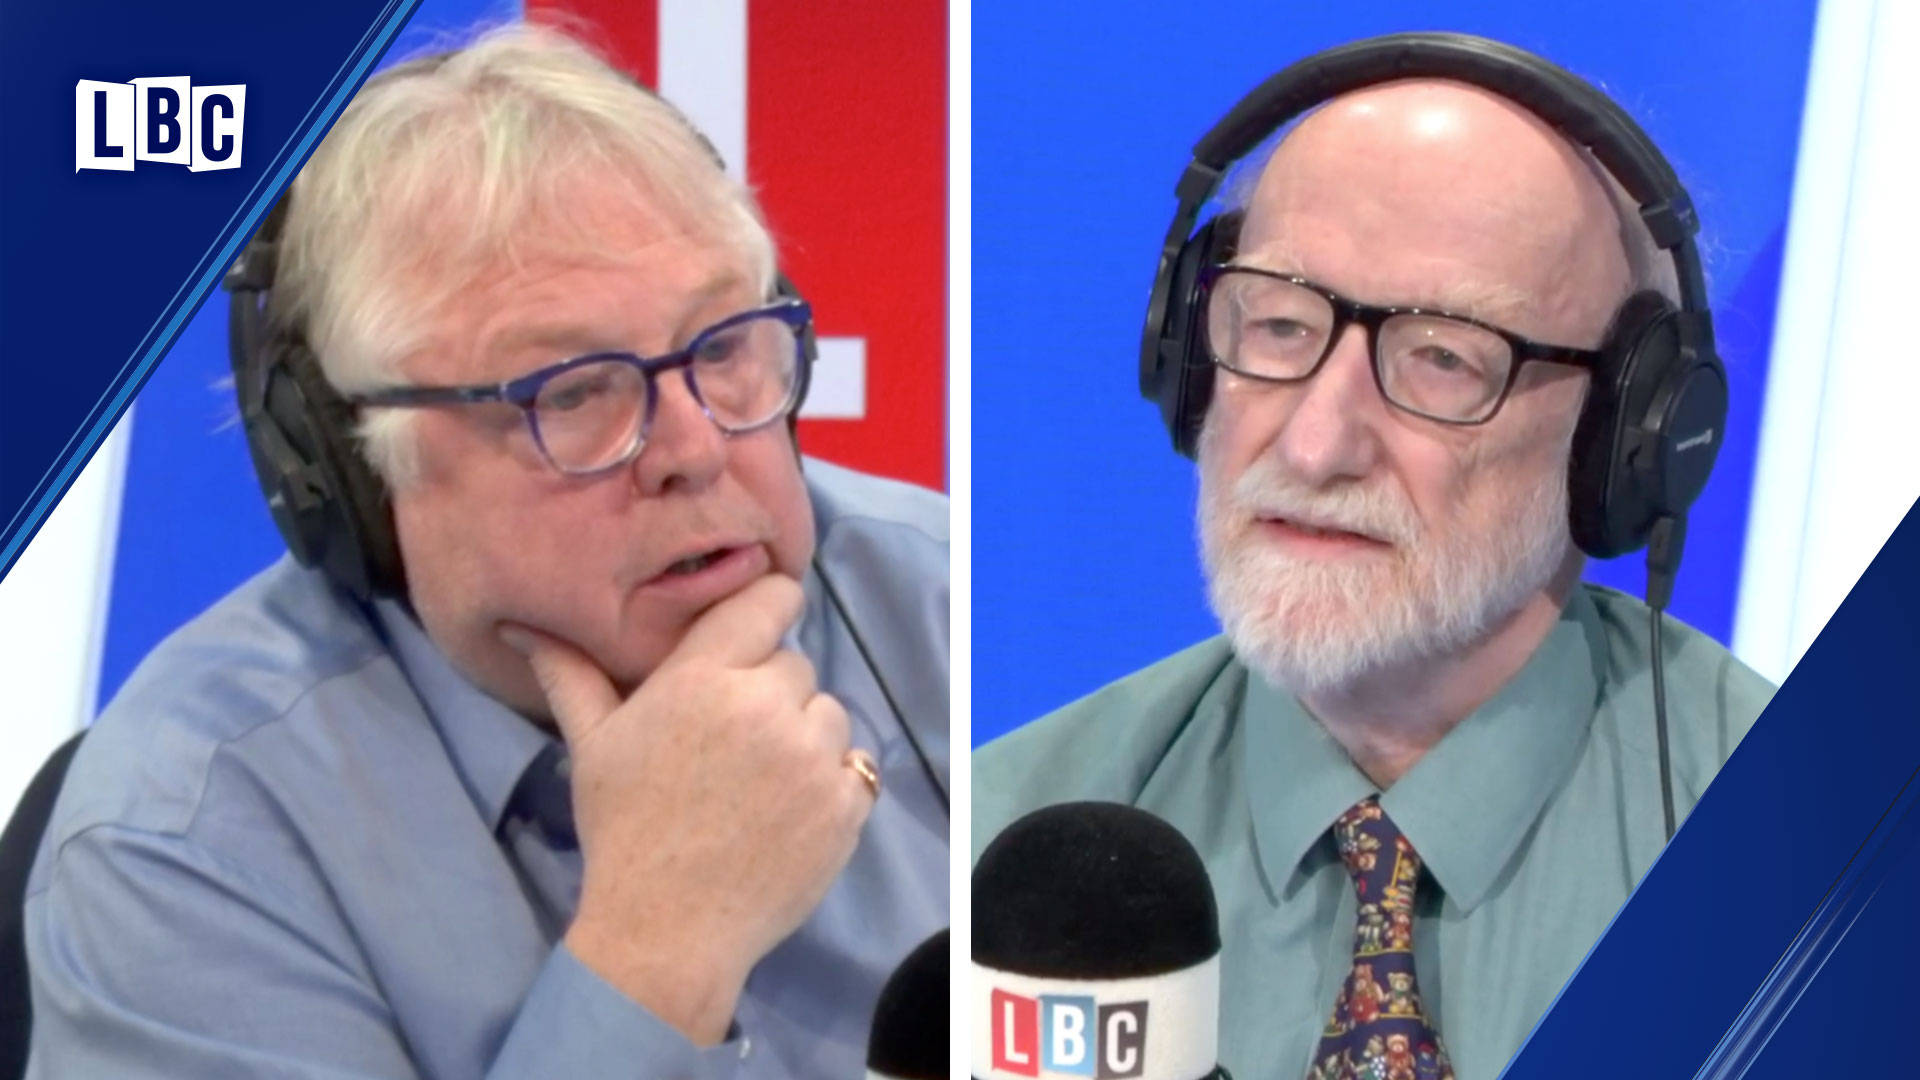 Nick Ferrari's brilliant interview with Lib Dem peer who compared Brexit to 1930s Germany